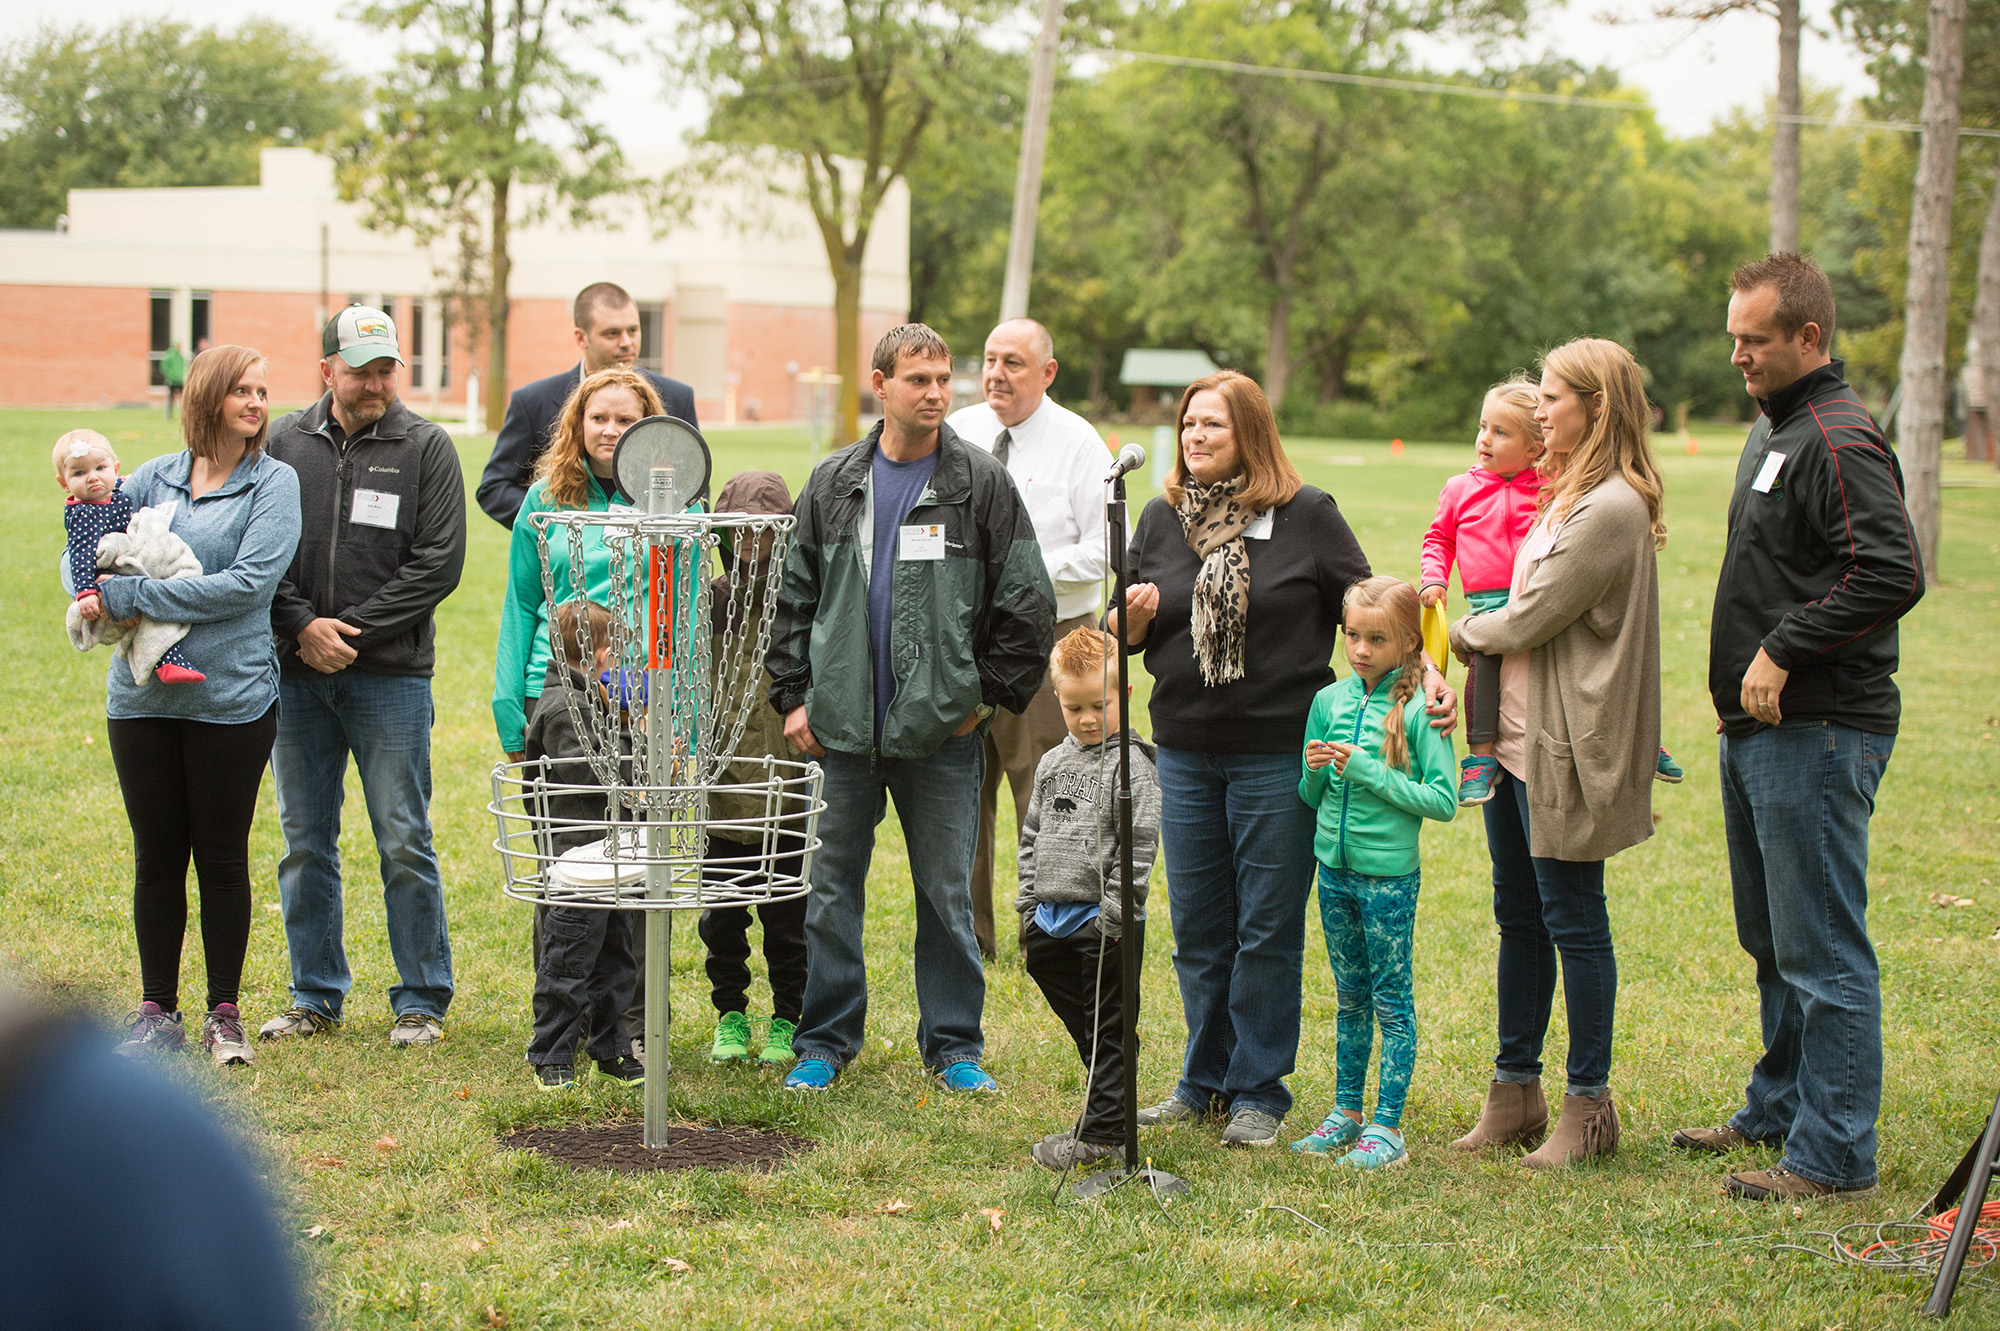 Patsy (King) '75 Unruh introduces her and Doug Unruh's '74 children and grandchildren at the Disc Golf Course dedication.